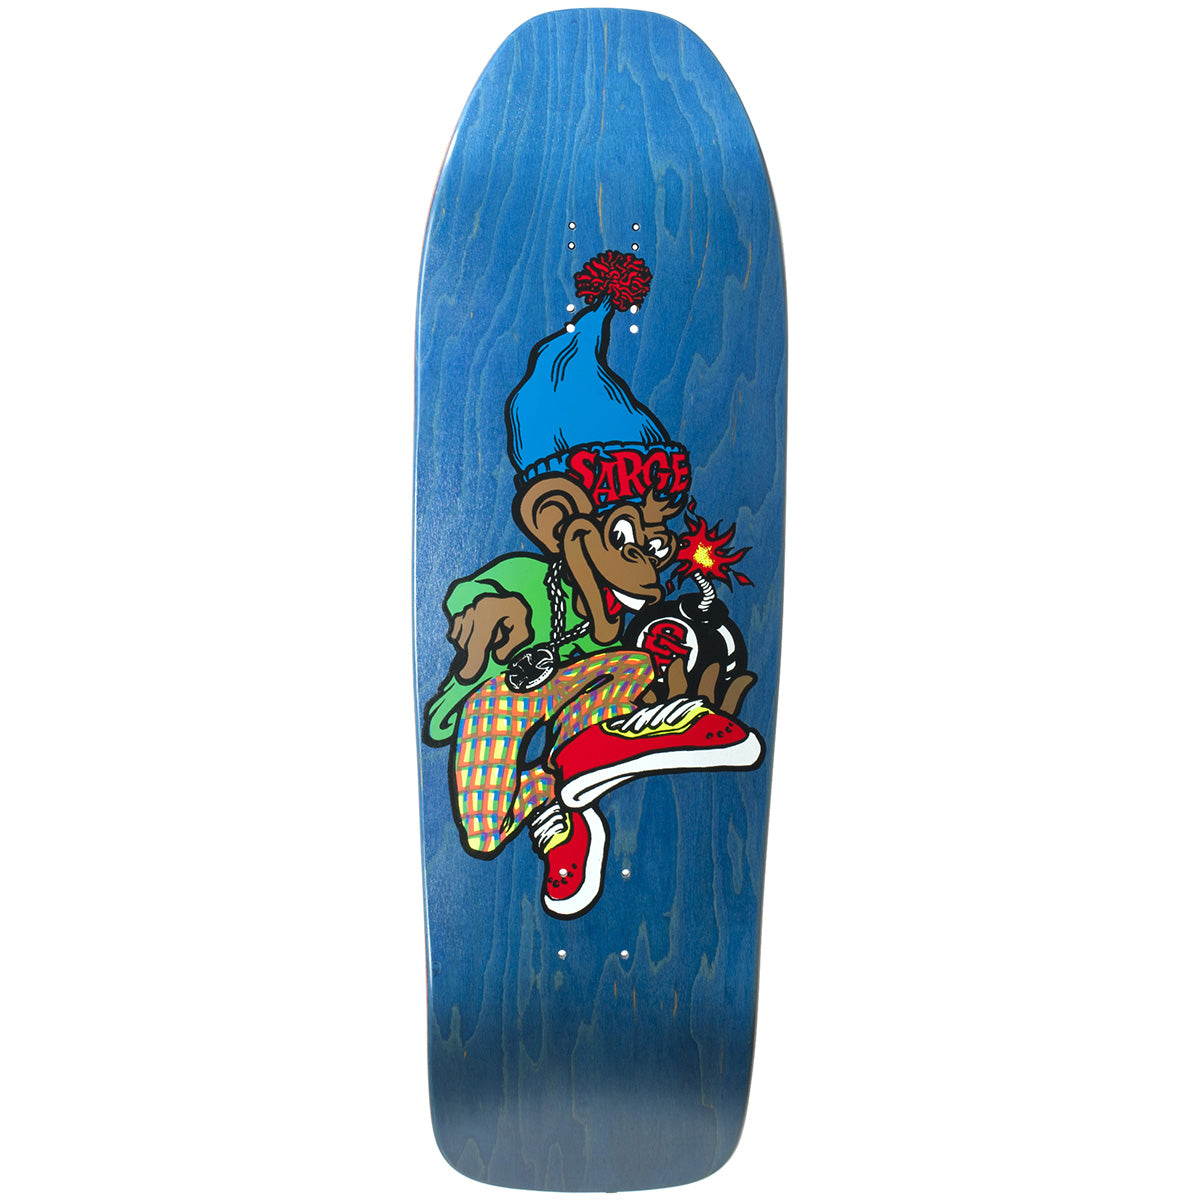 "New Deal Danny Sargent Monkey Bomber Deck Blue - 9.625"" Screenprinted"